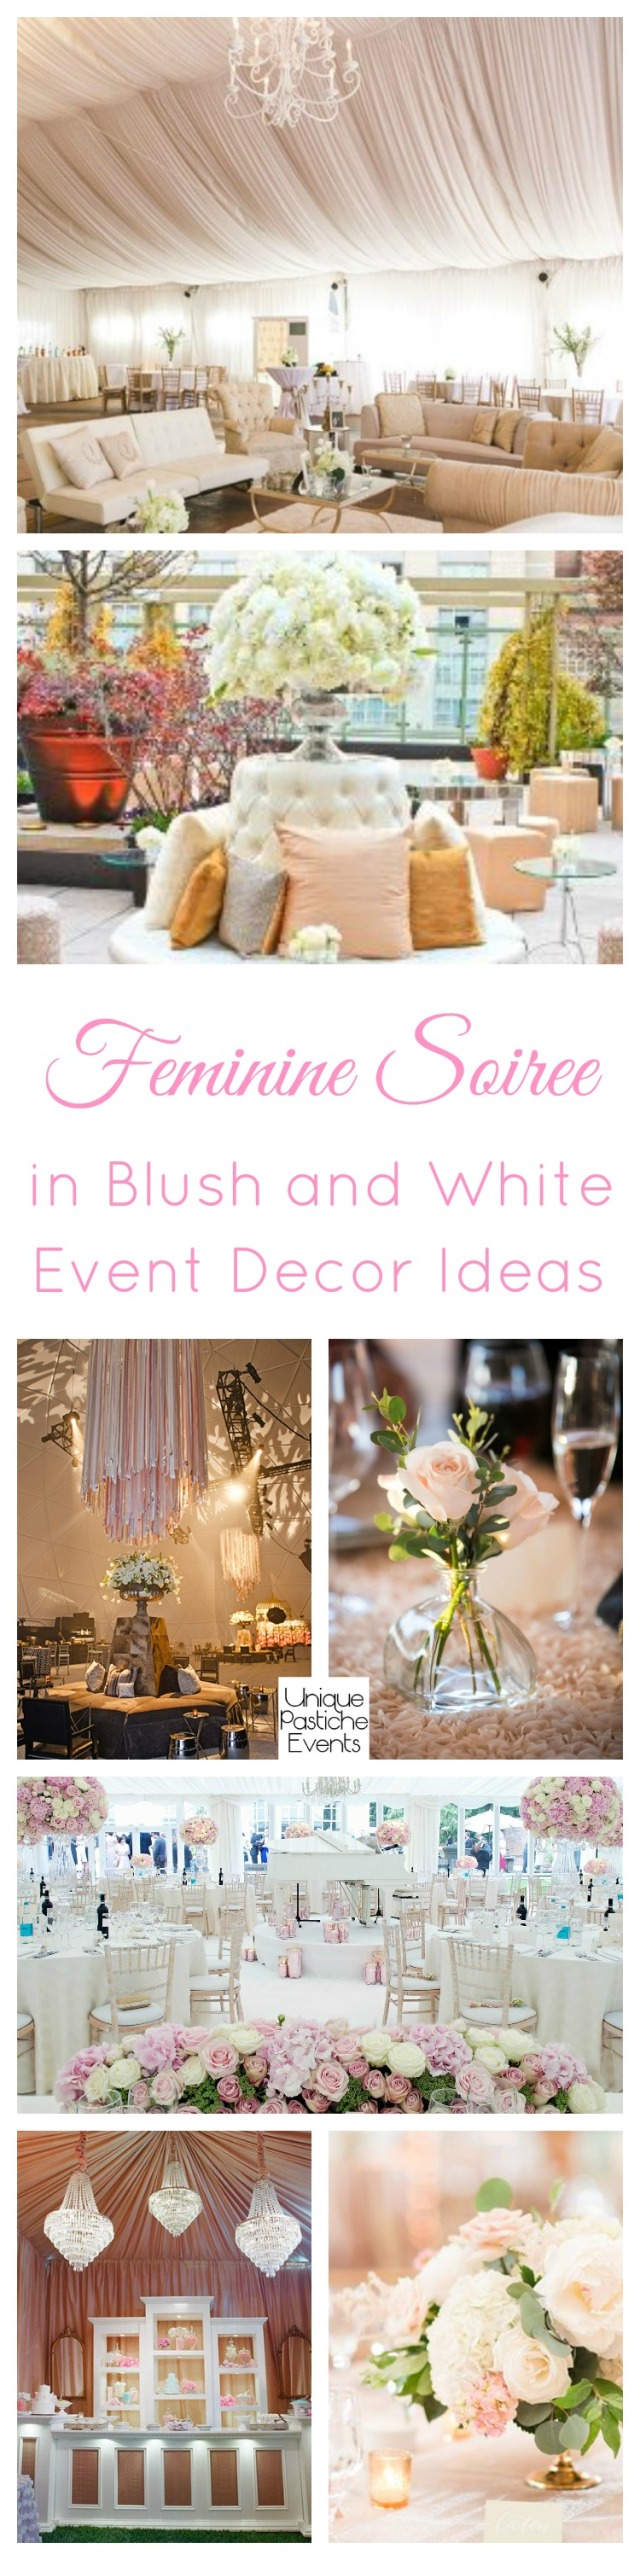 Feminine Soiree in Blush and White - Event Decor Ideas